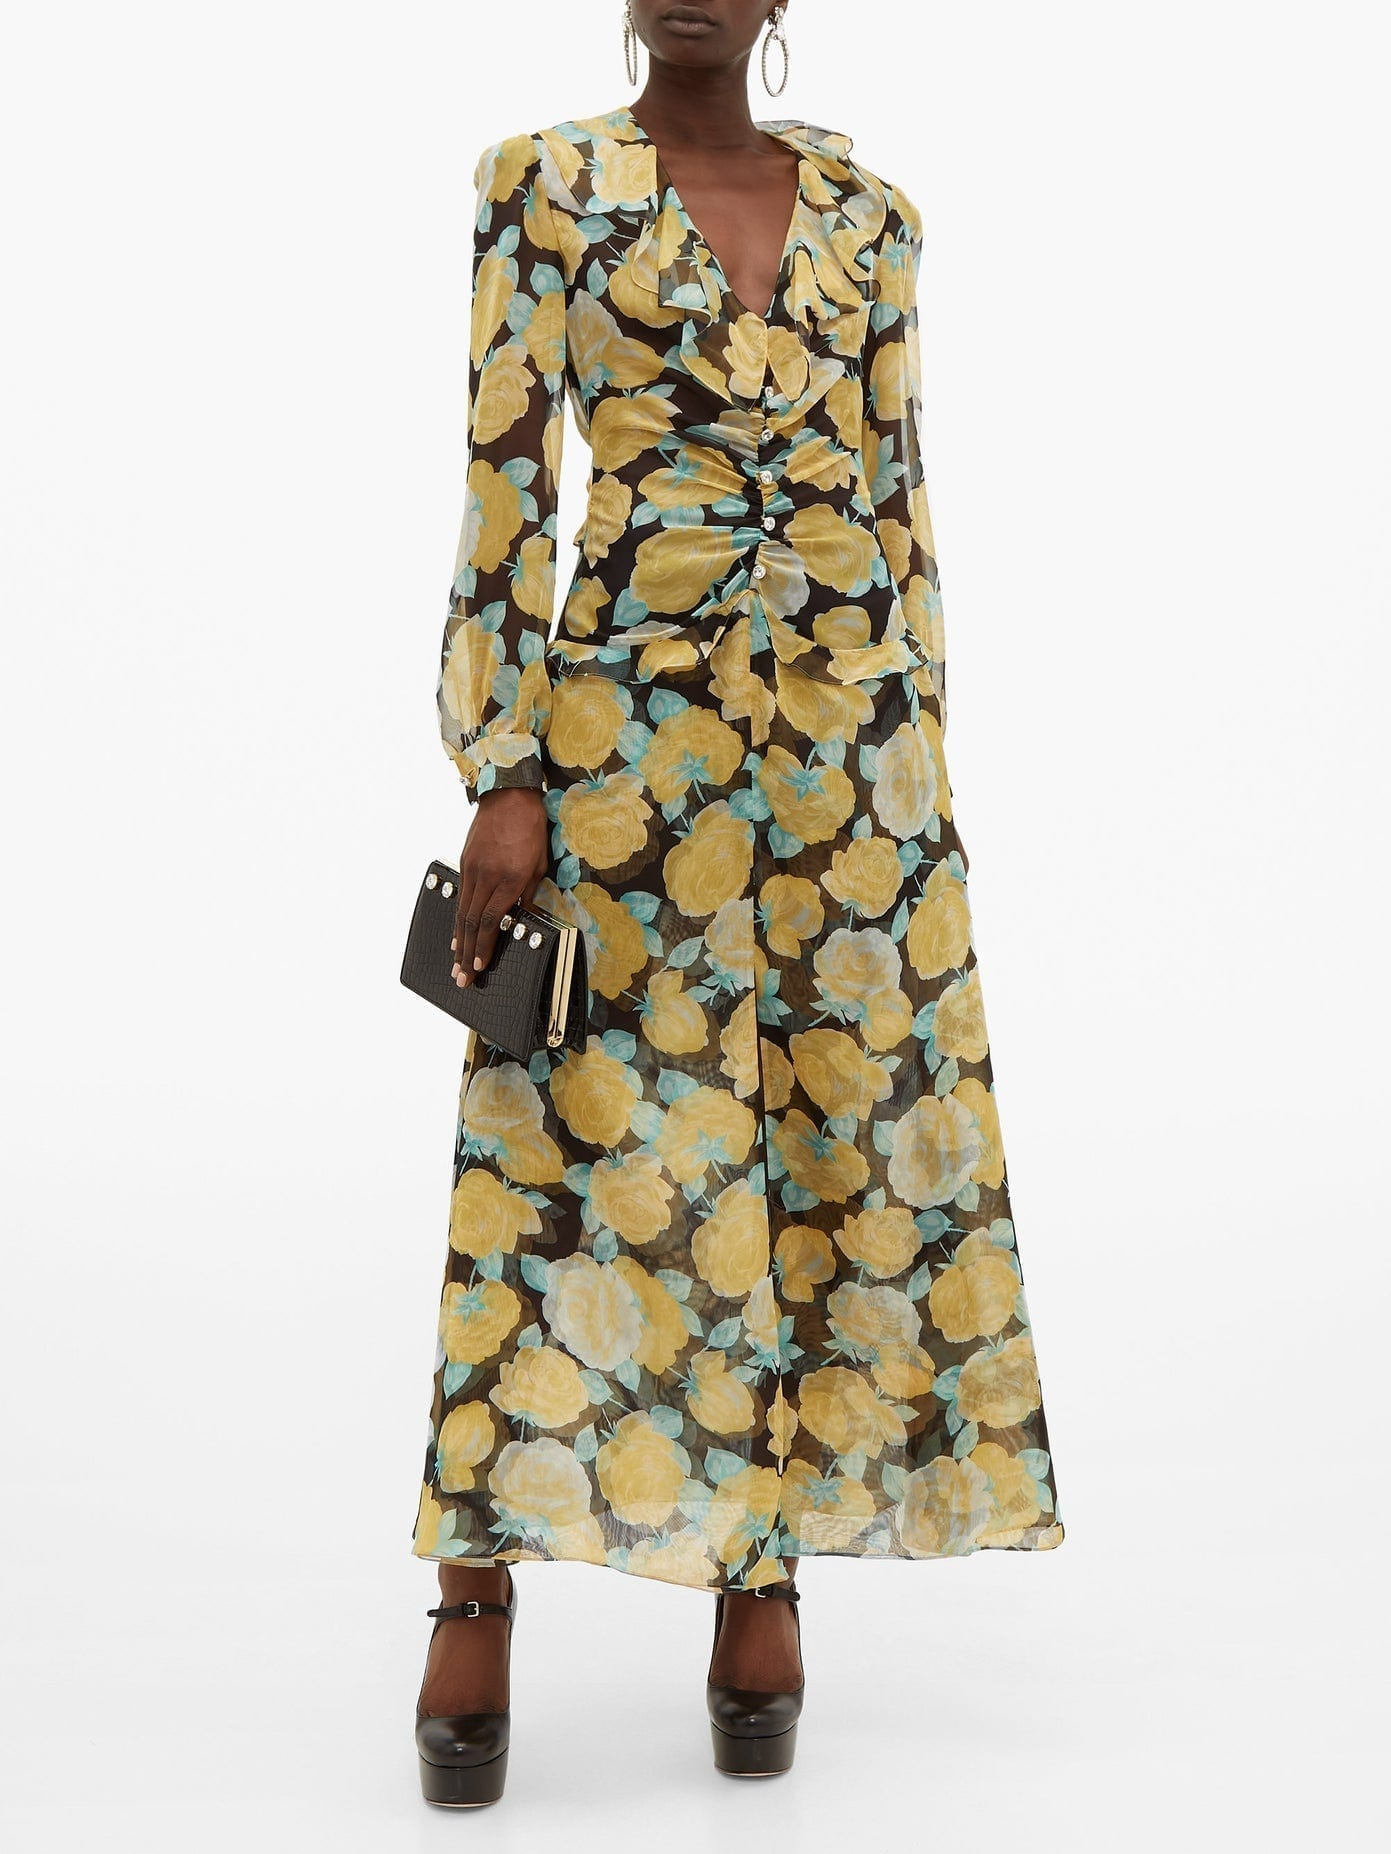 MIU MIU Rose-print Crystal-embellished Georgette Dress